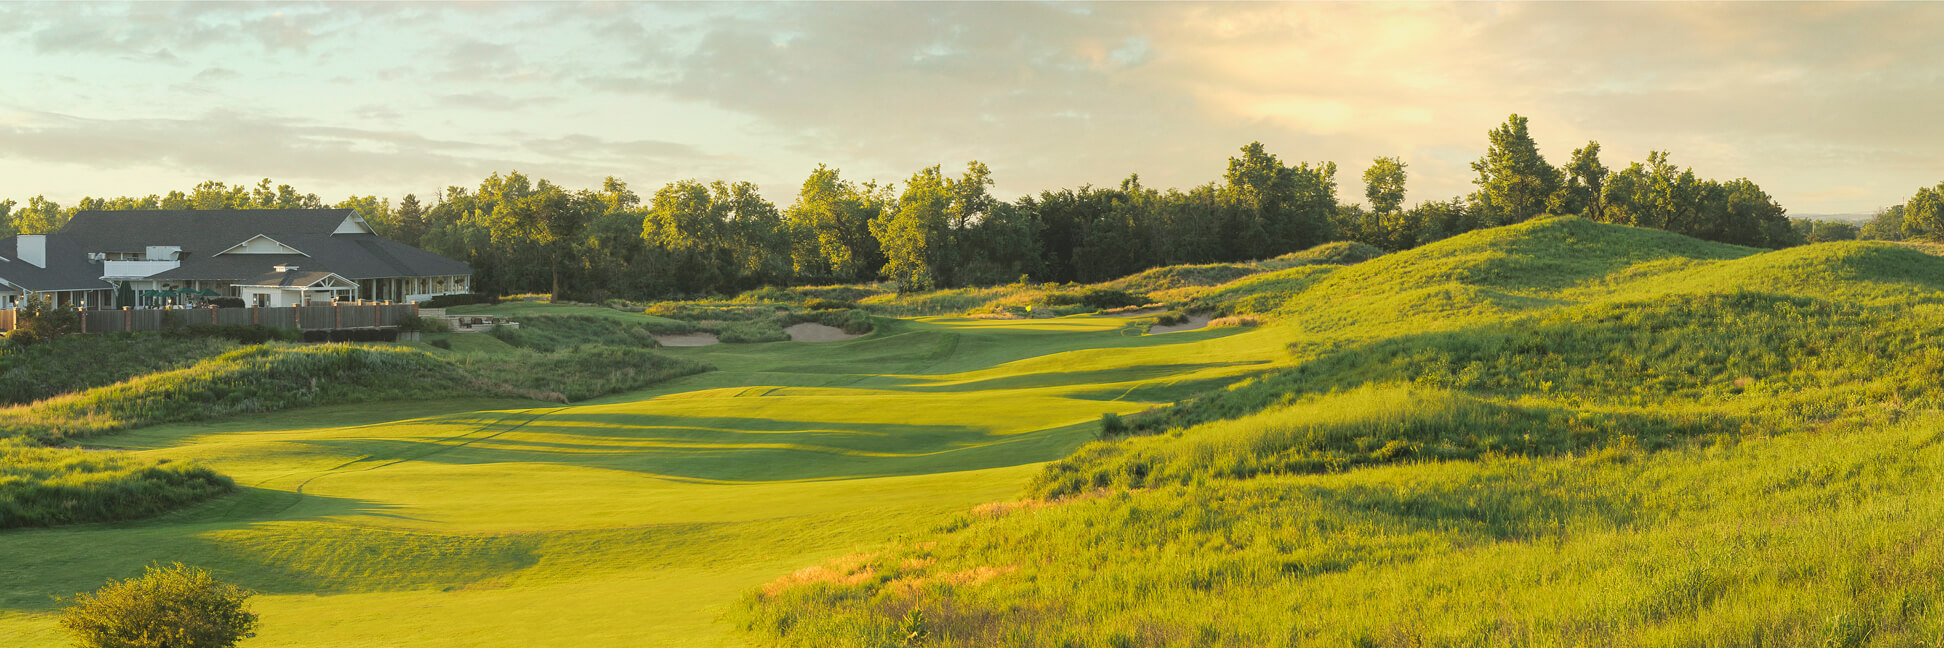 Golf Course Image - Prairie Dunes Country Club No. 18